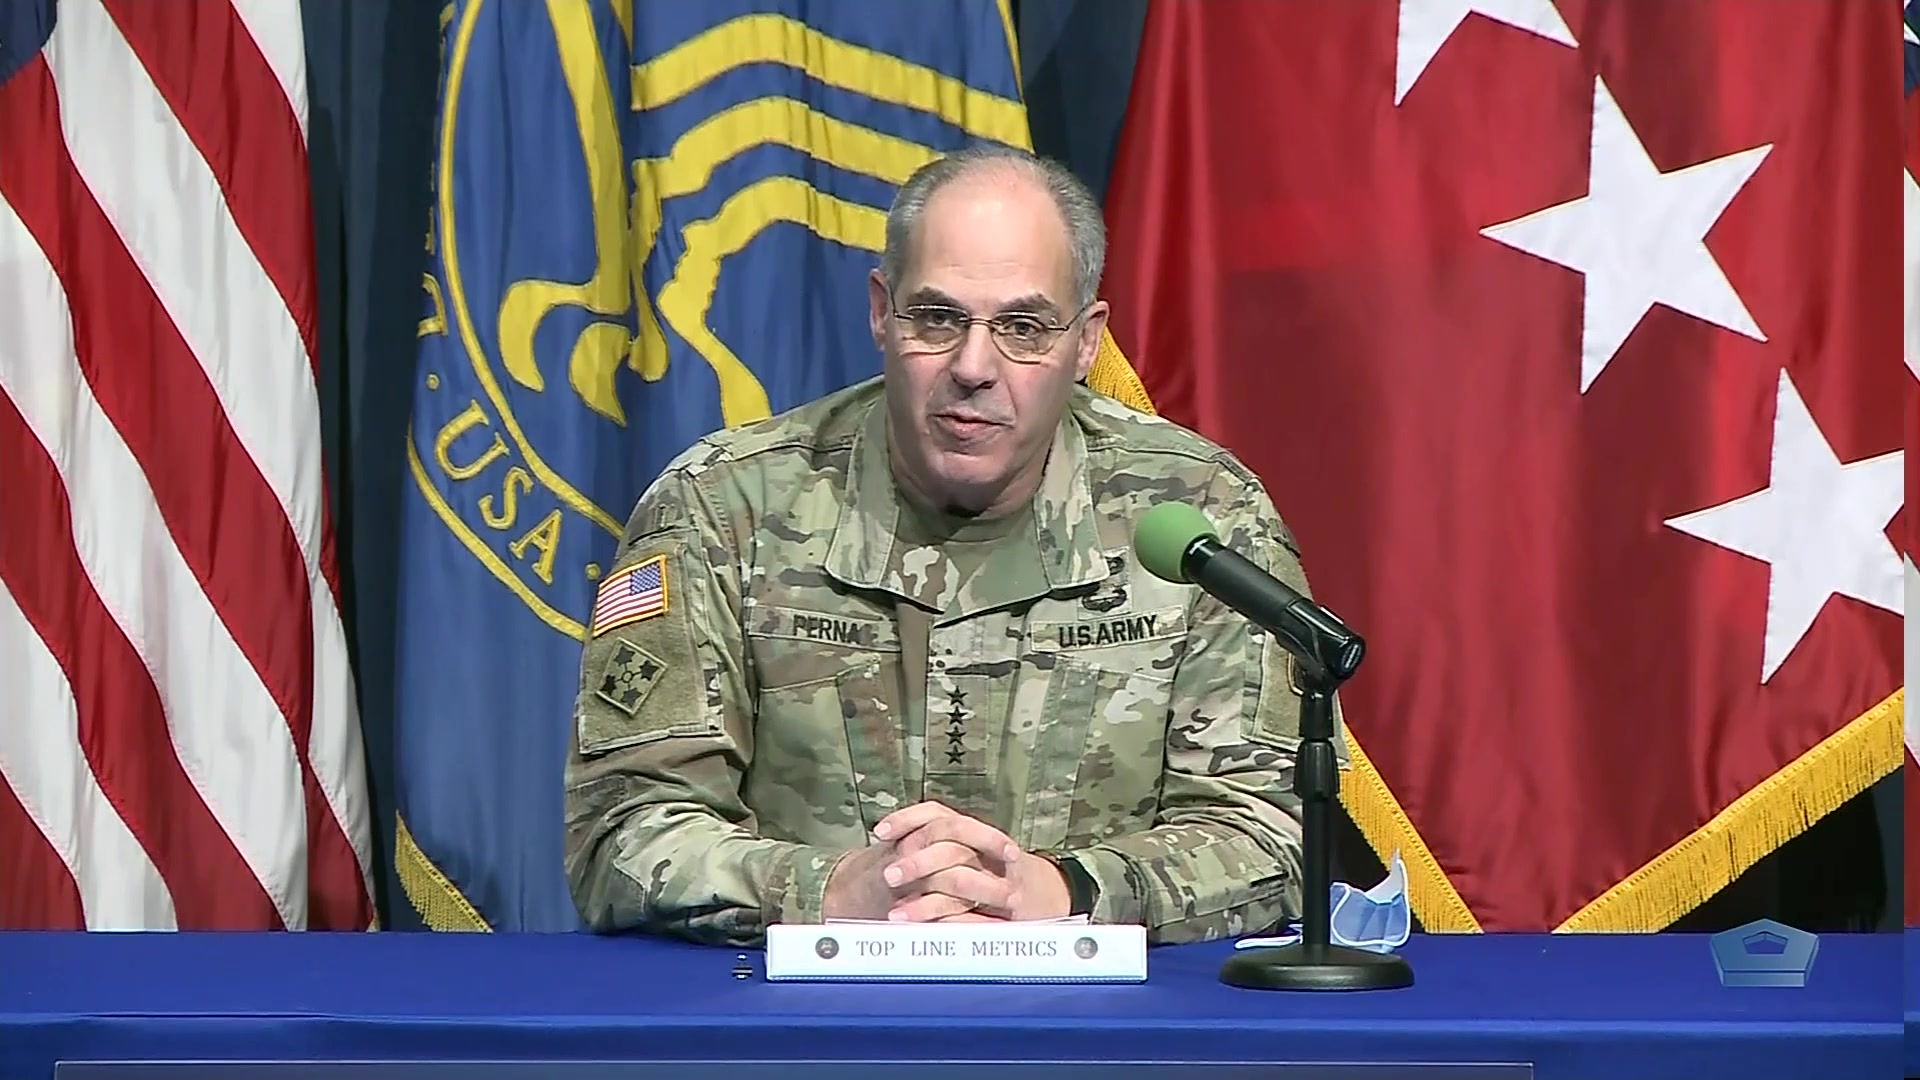 Army Gen. Gustave F. Perna, chief operating officer of Operation Warp Speed, and Dr. Moncef Slaoui, chief advisor to Operation Warp Speed, brief the media on Operation Warp Speed and COVID-19 vaccine distribution, Dec. 30, 2020.